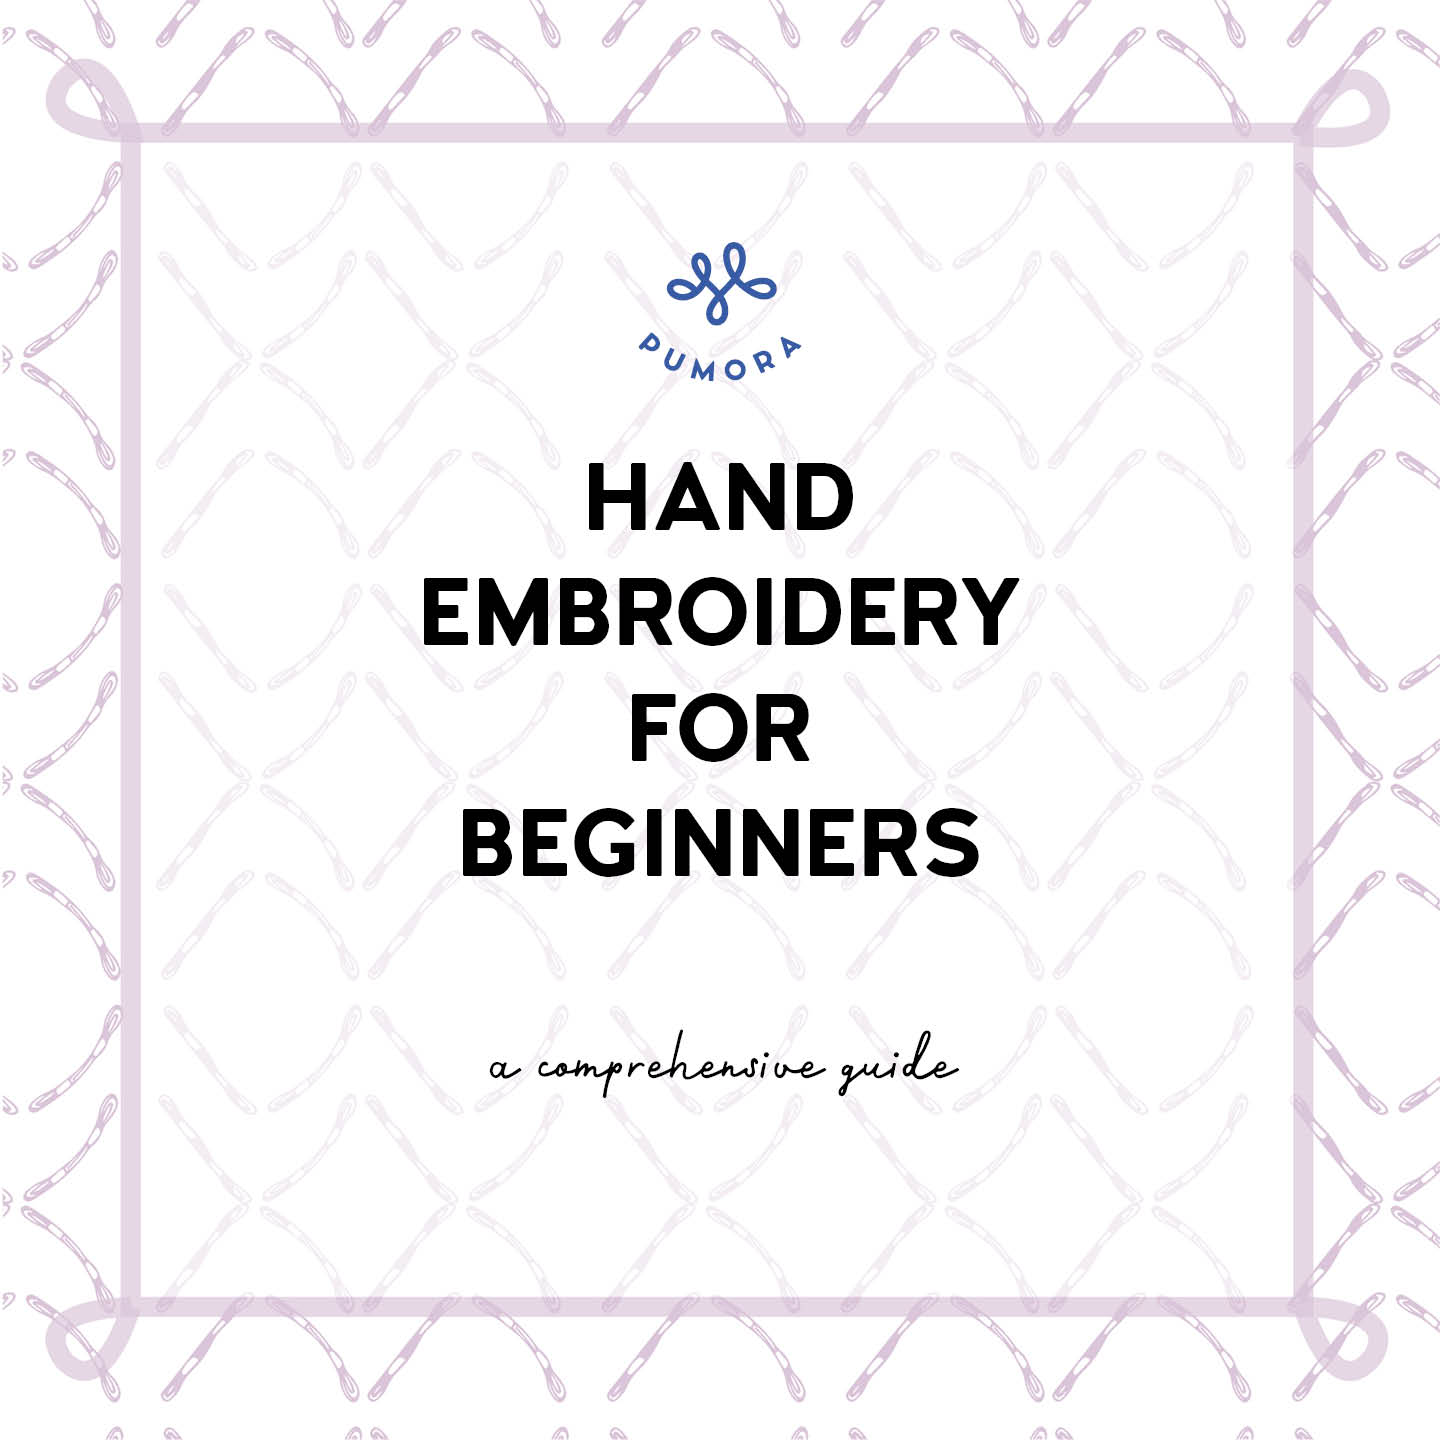 Embroidery for Beginners - how to embroider